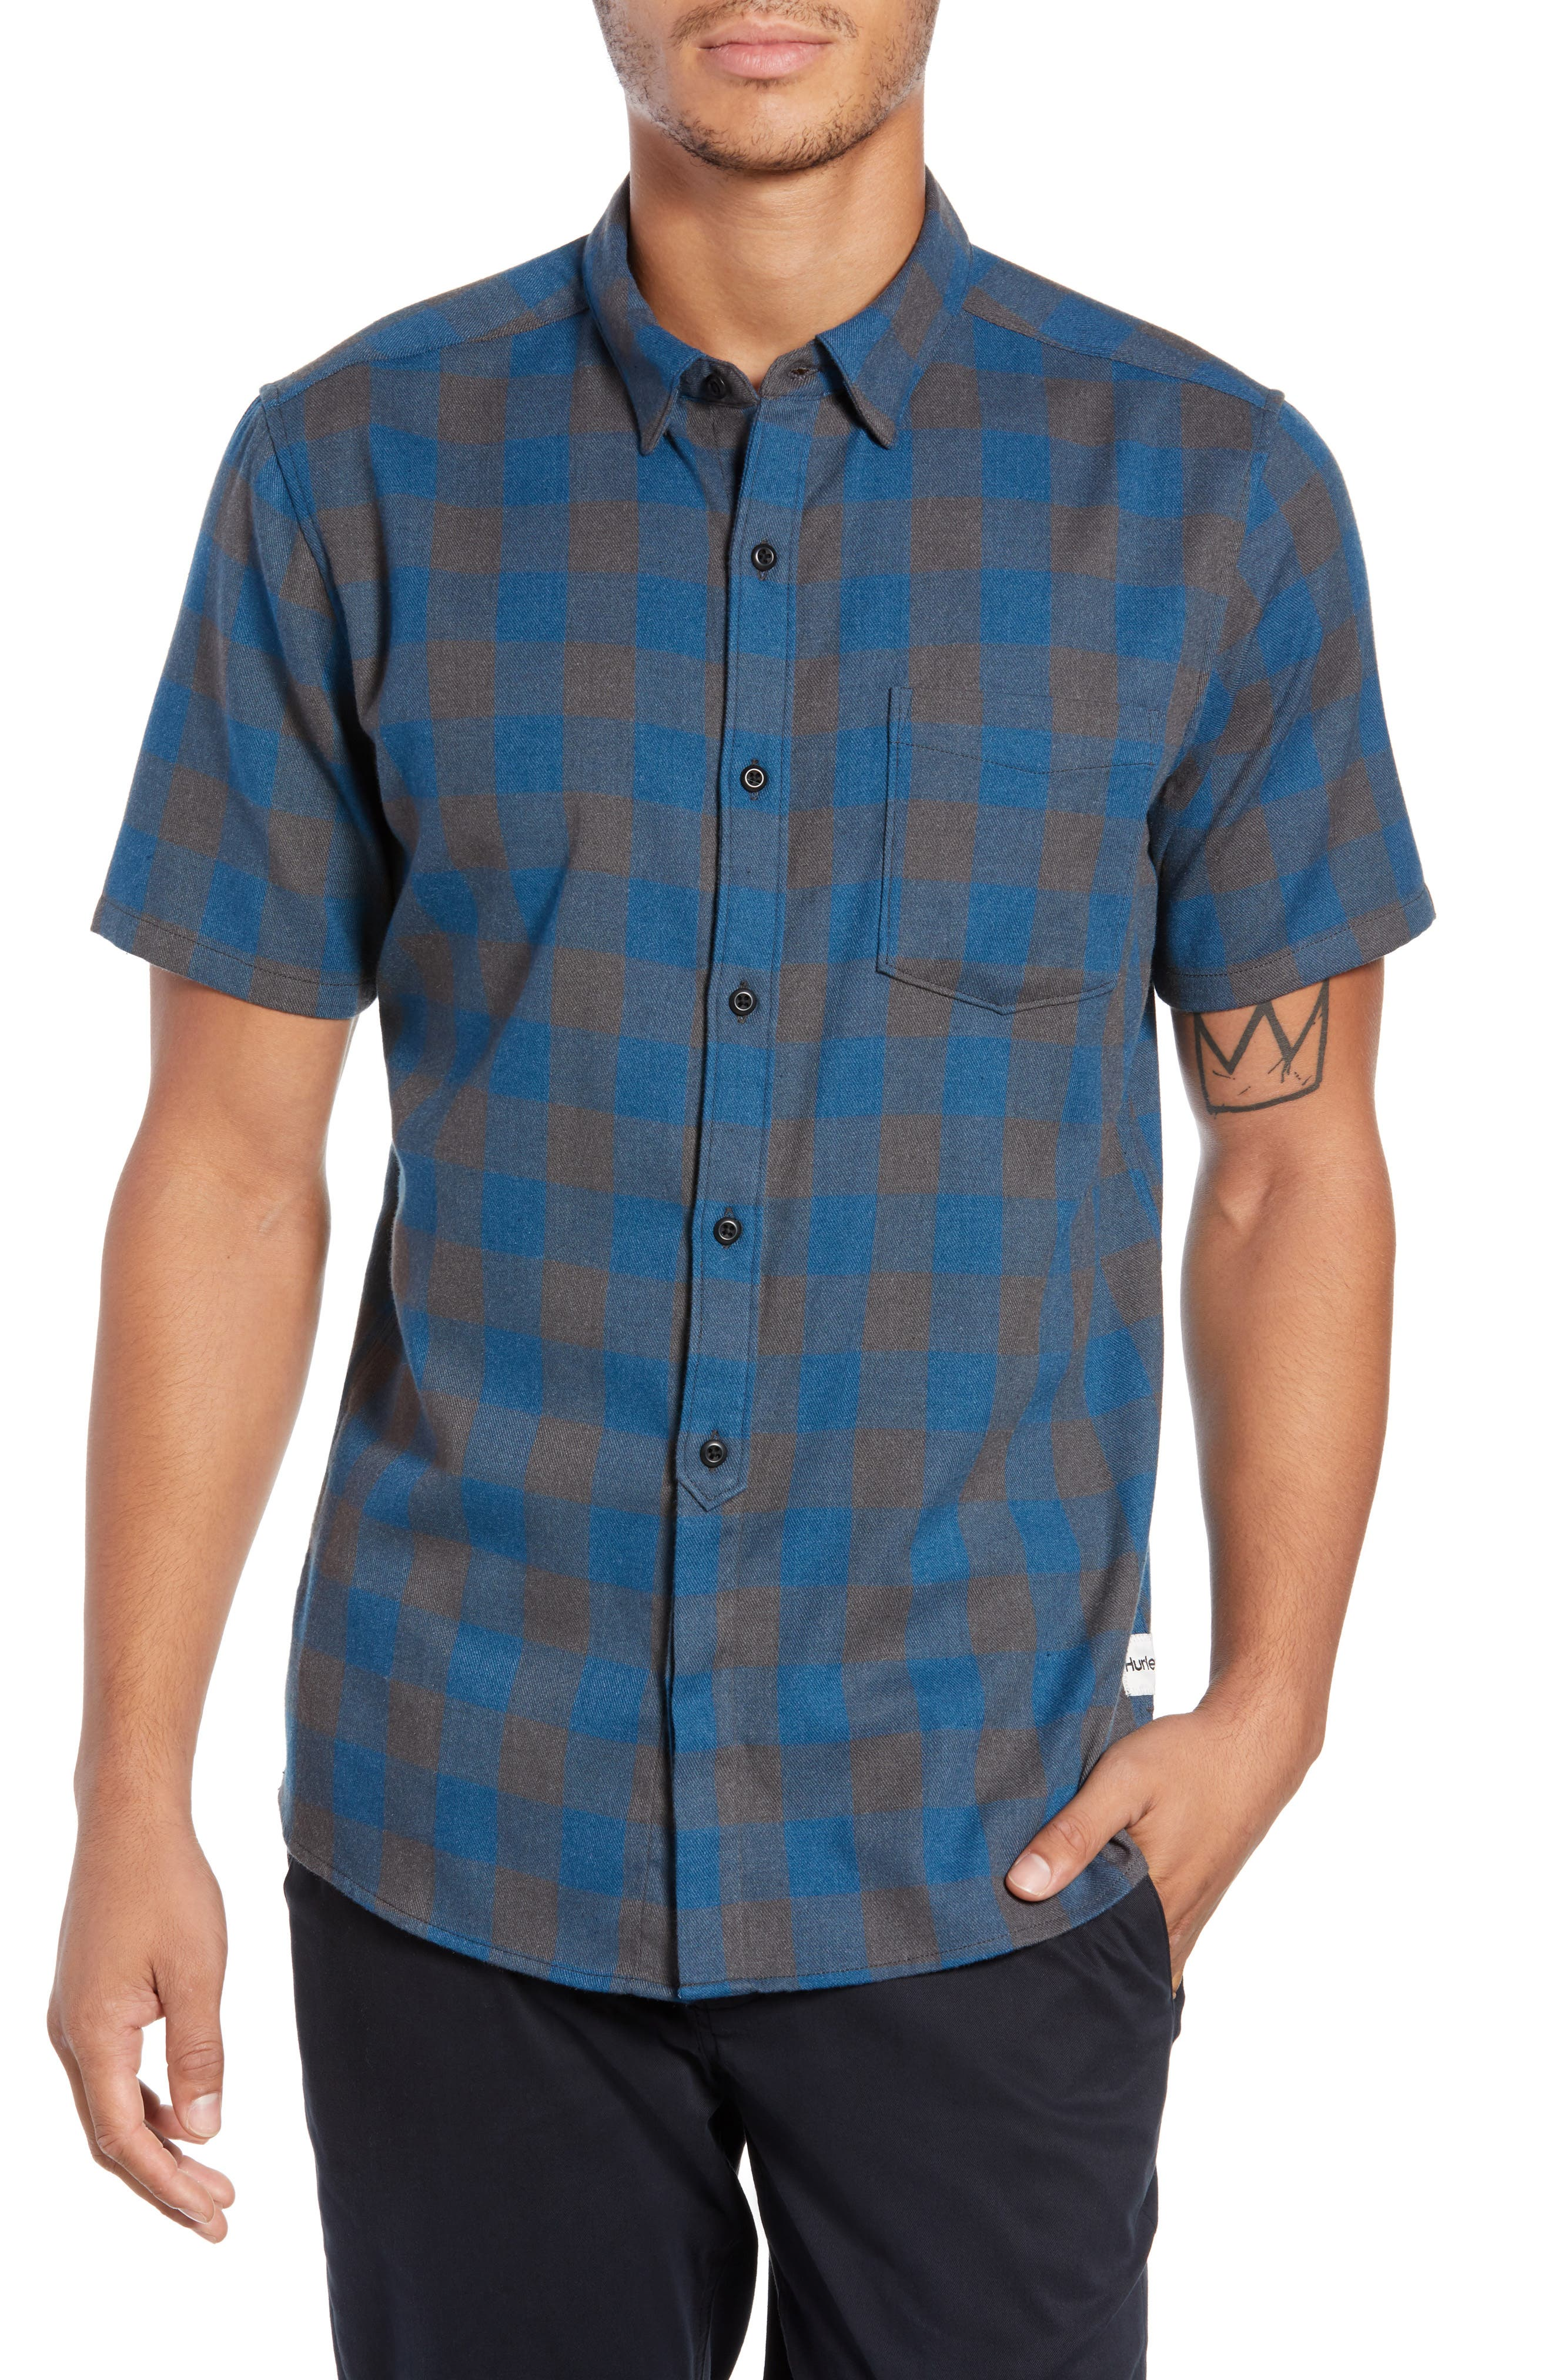 Bison Check Twill Woven Shirt,                             Main thumbnail 1, color,                             BLUE FORCE HEATHER